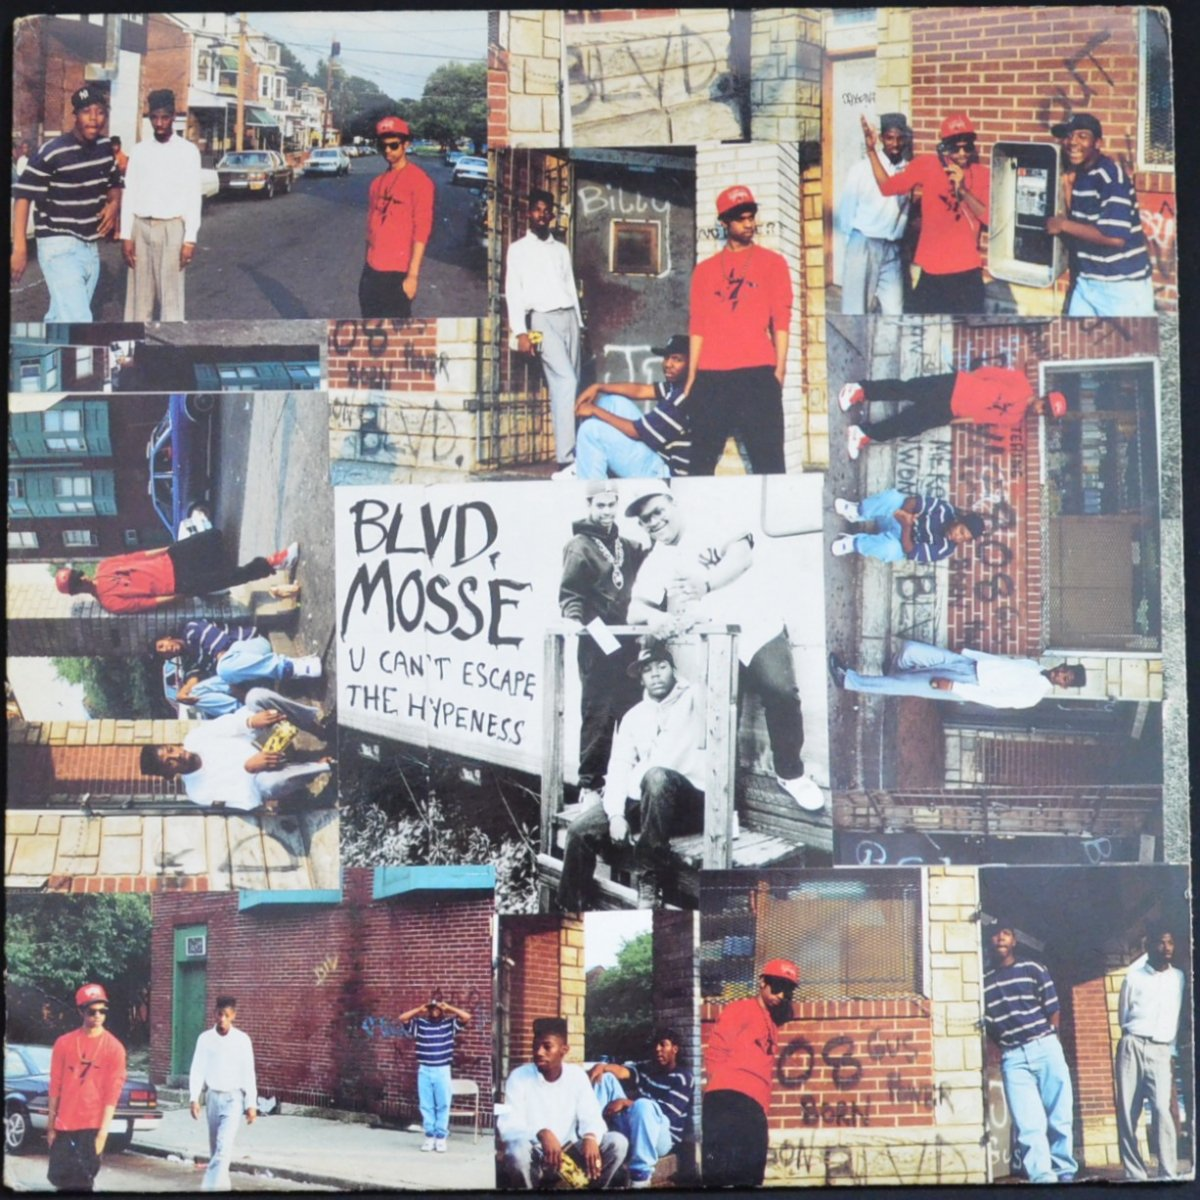 BLVD. MOSSE ‎/ U CAN'T ESCAPE THE HYPENESS / CHECK OUT THE FOOTWORK (12